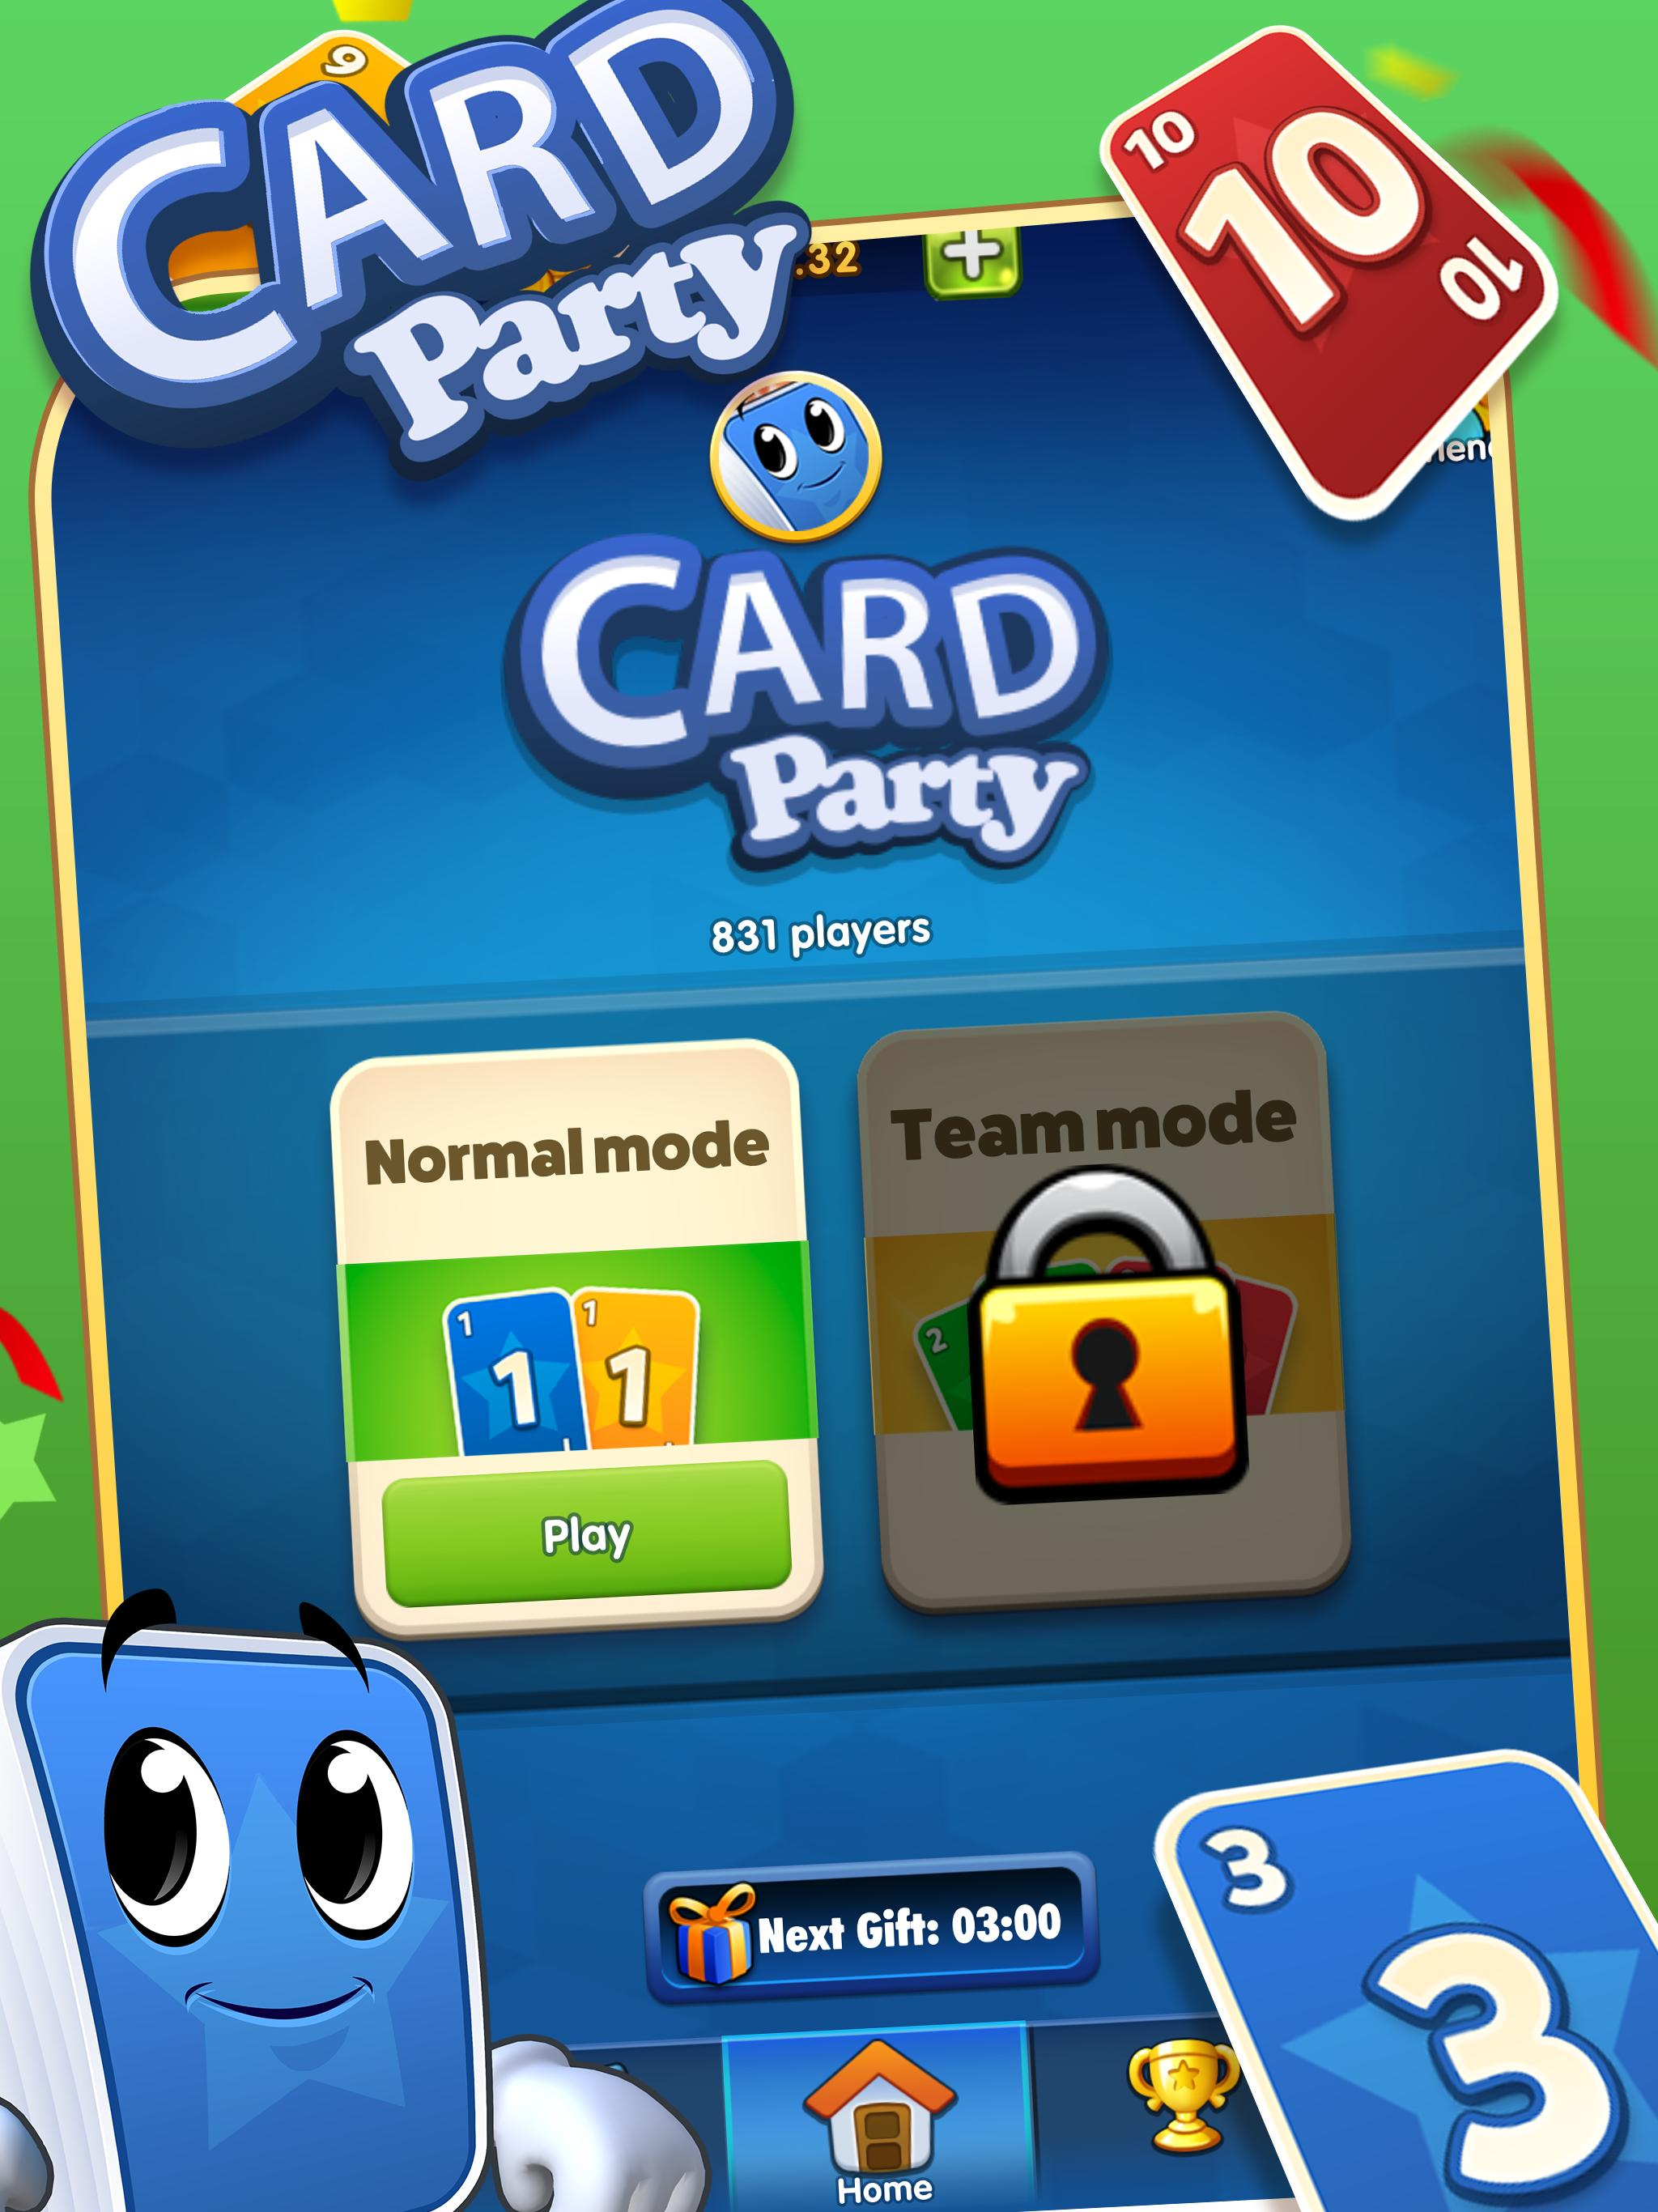 GamePoint CardParty 24357 Screenshot 11